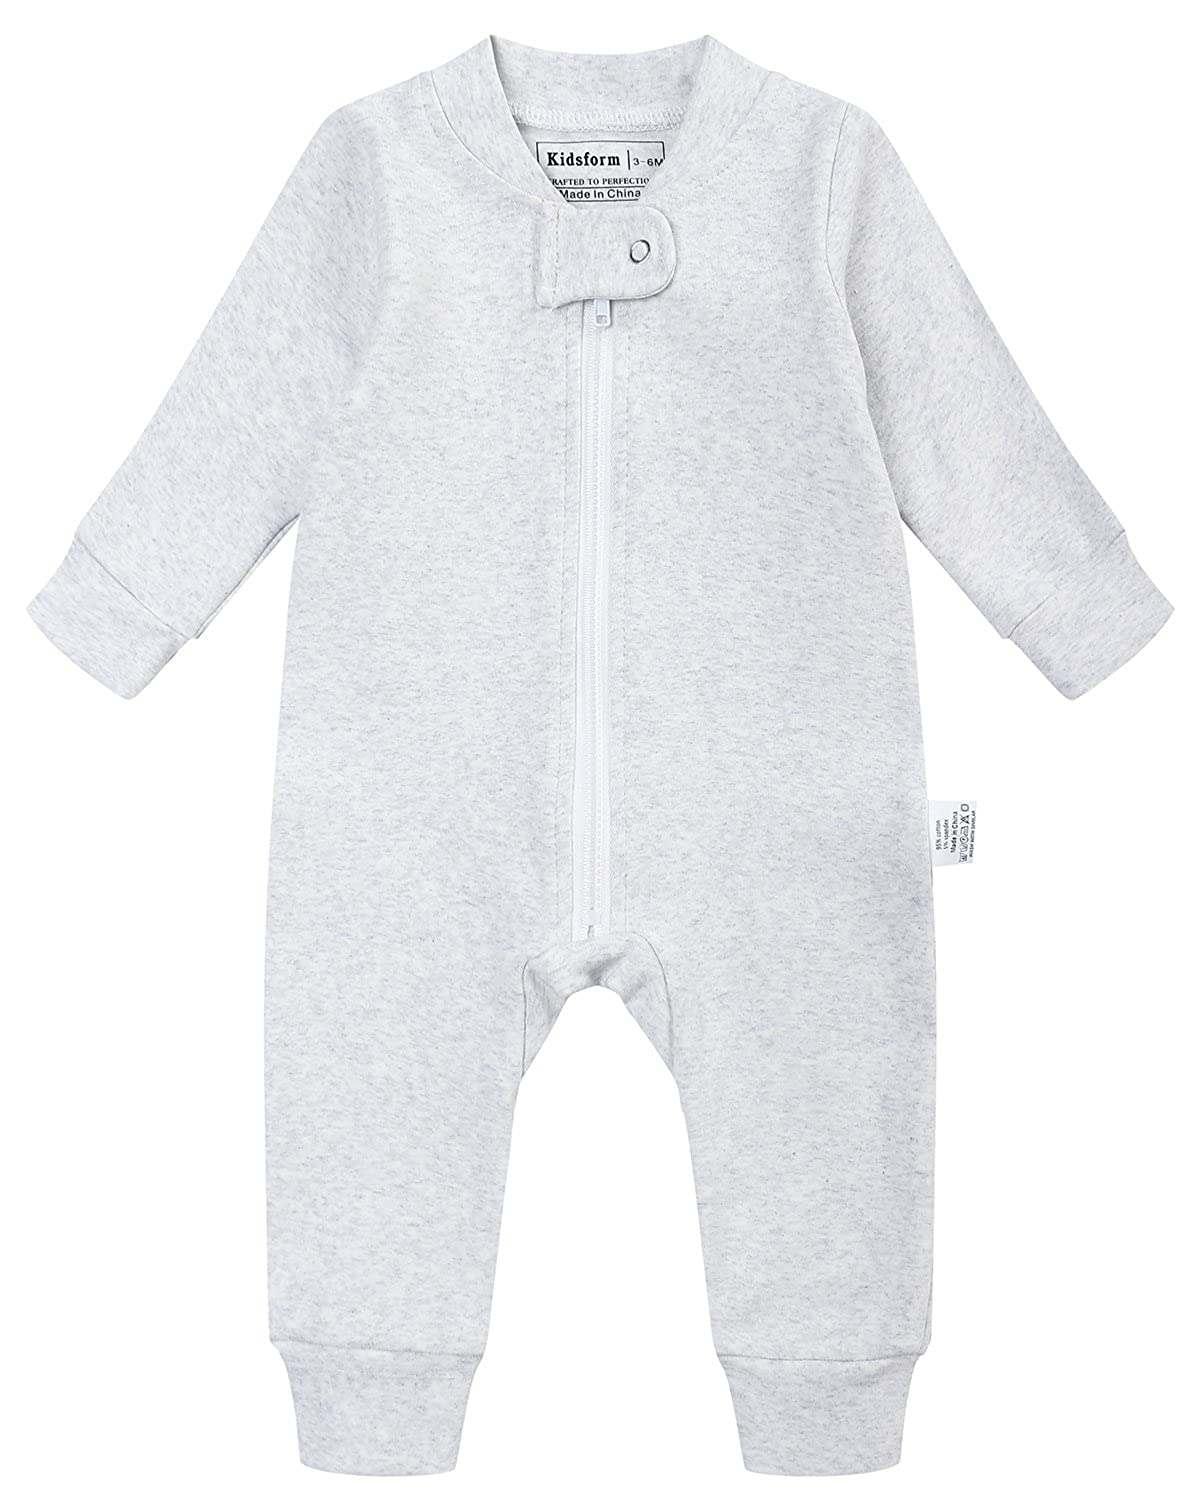 Amazon.com: Kidsform Baby Cotton Romper Boys Girls Bodysuit Zip Up Pajamas Long Sleeve Jumpsuit Footless Onesie: Clothing